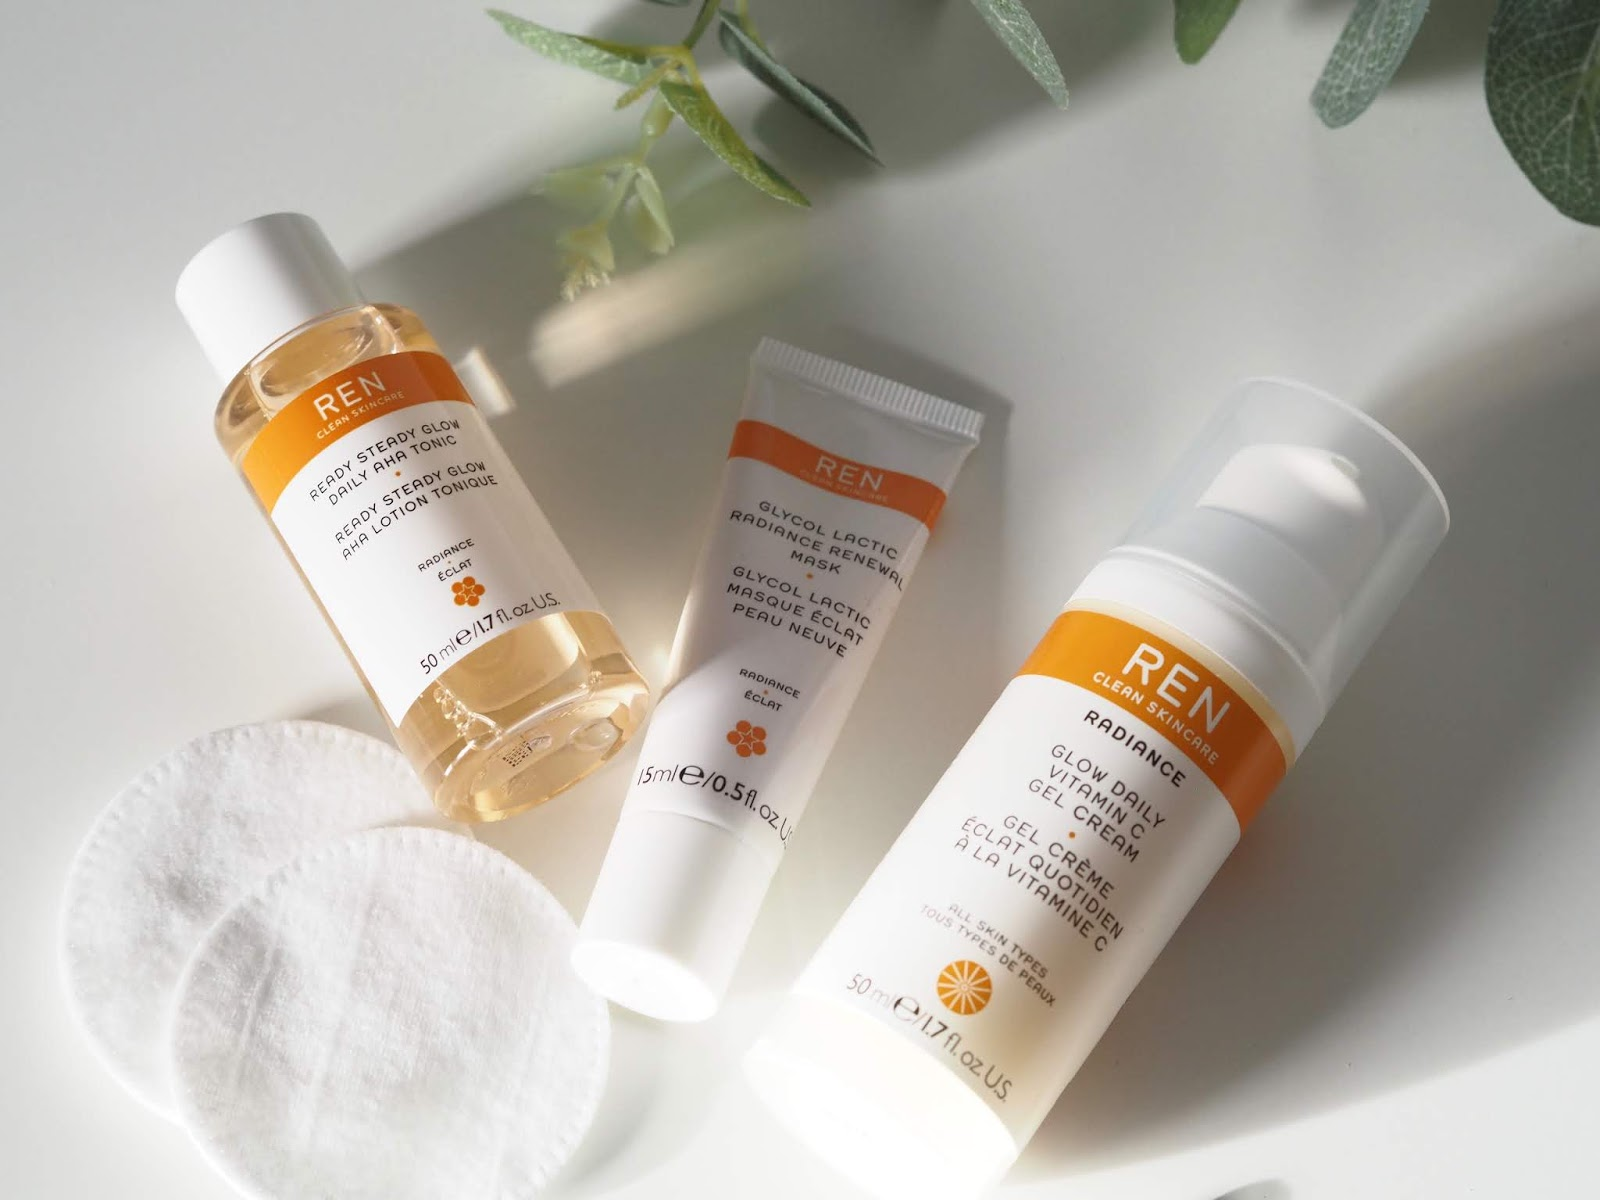 REN radiance trio of skincare